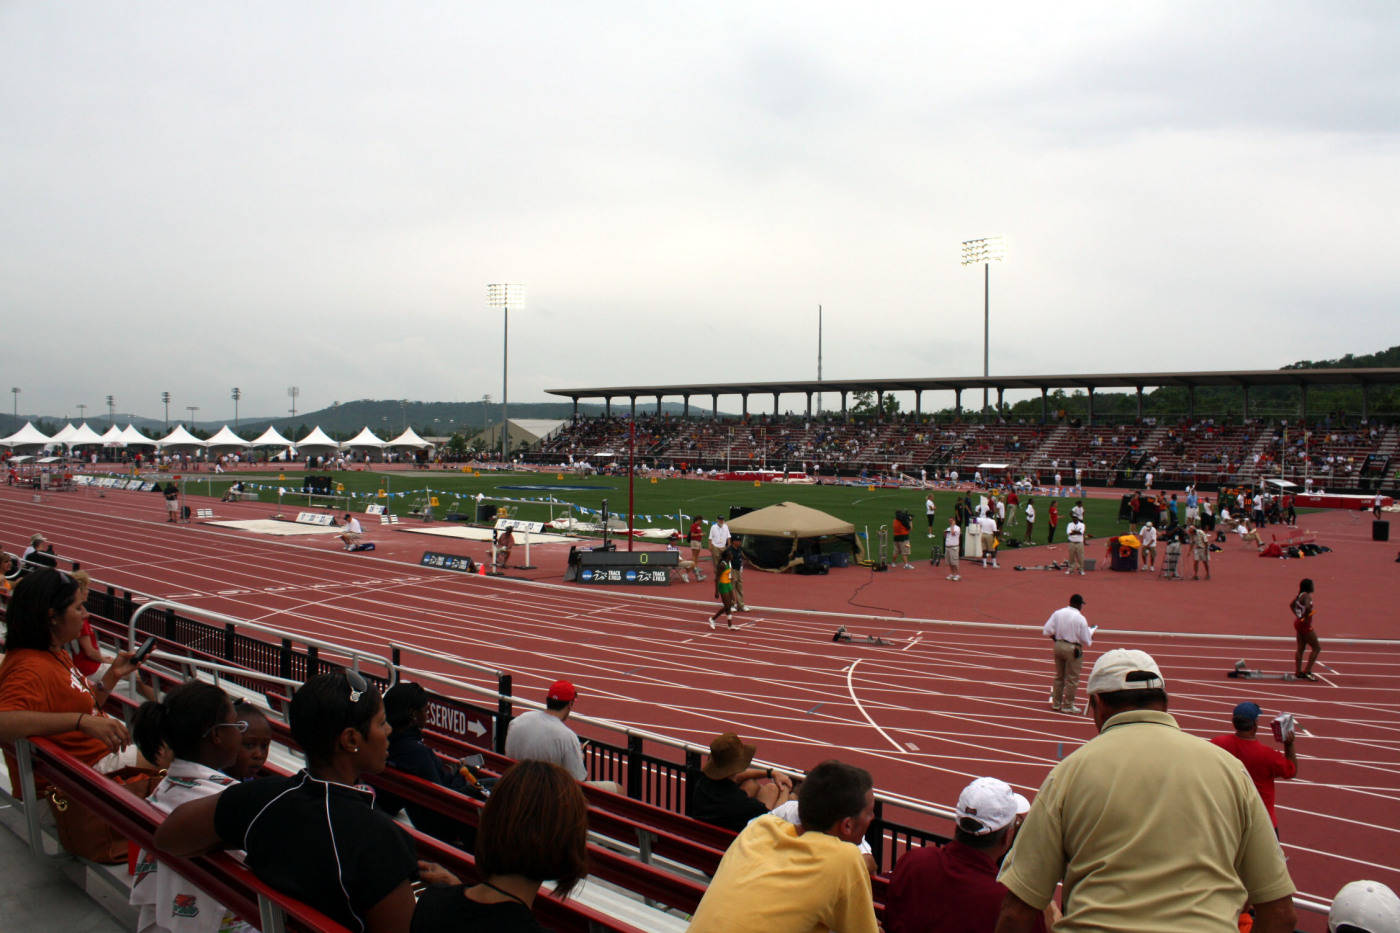 A broad view of the track at John McDonnell Field